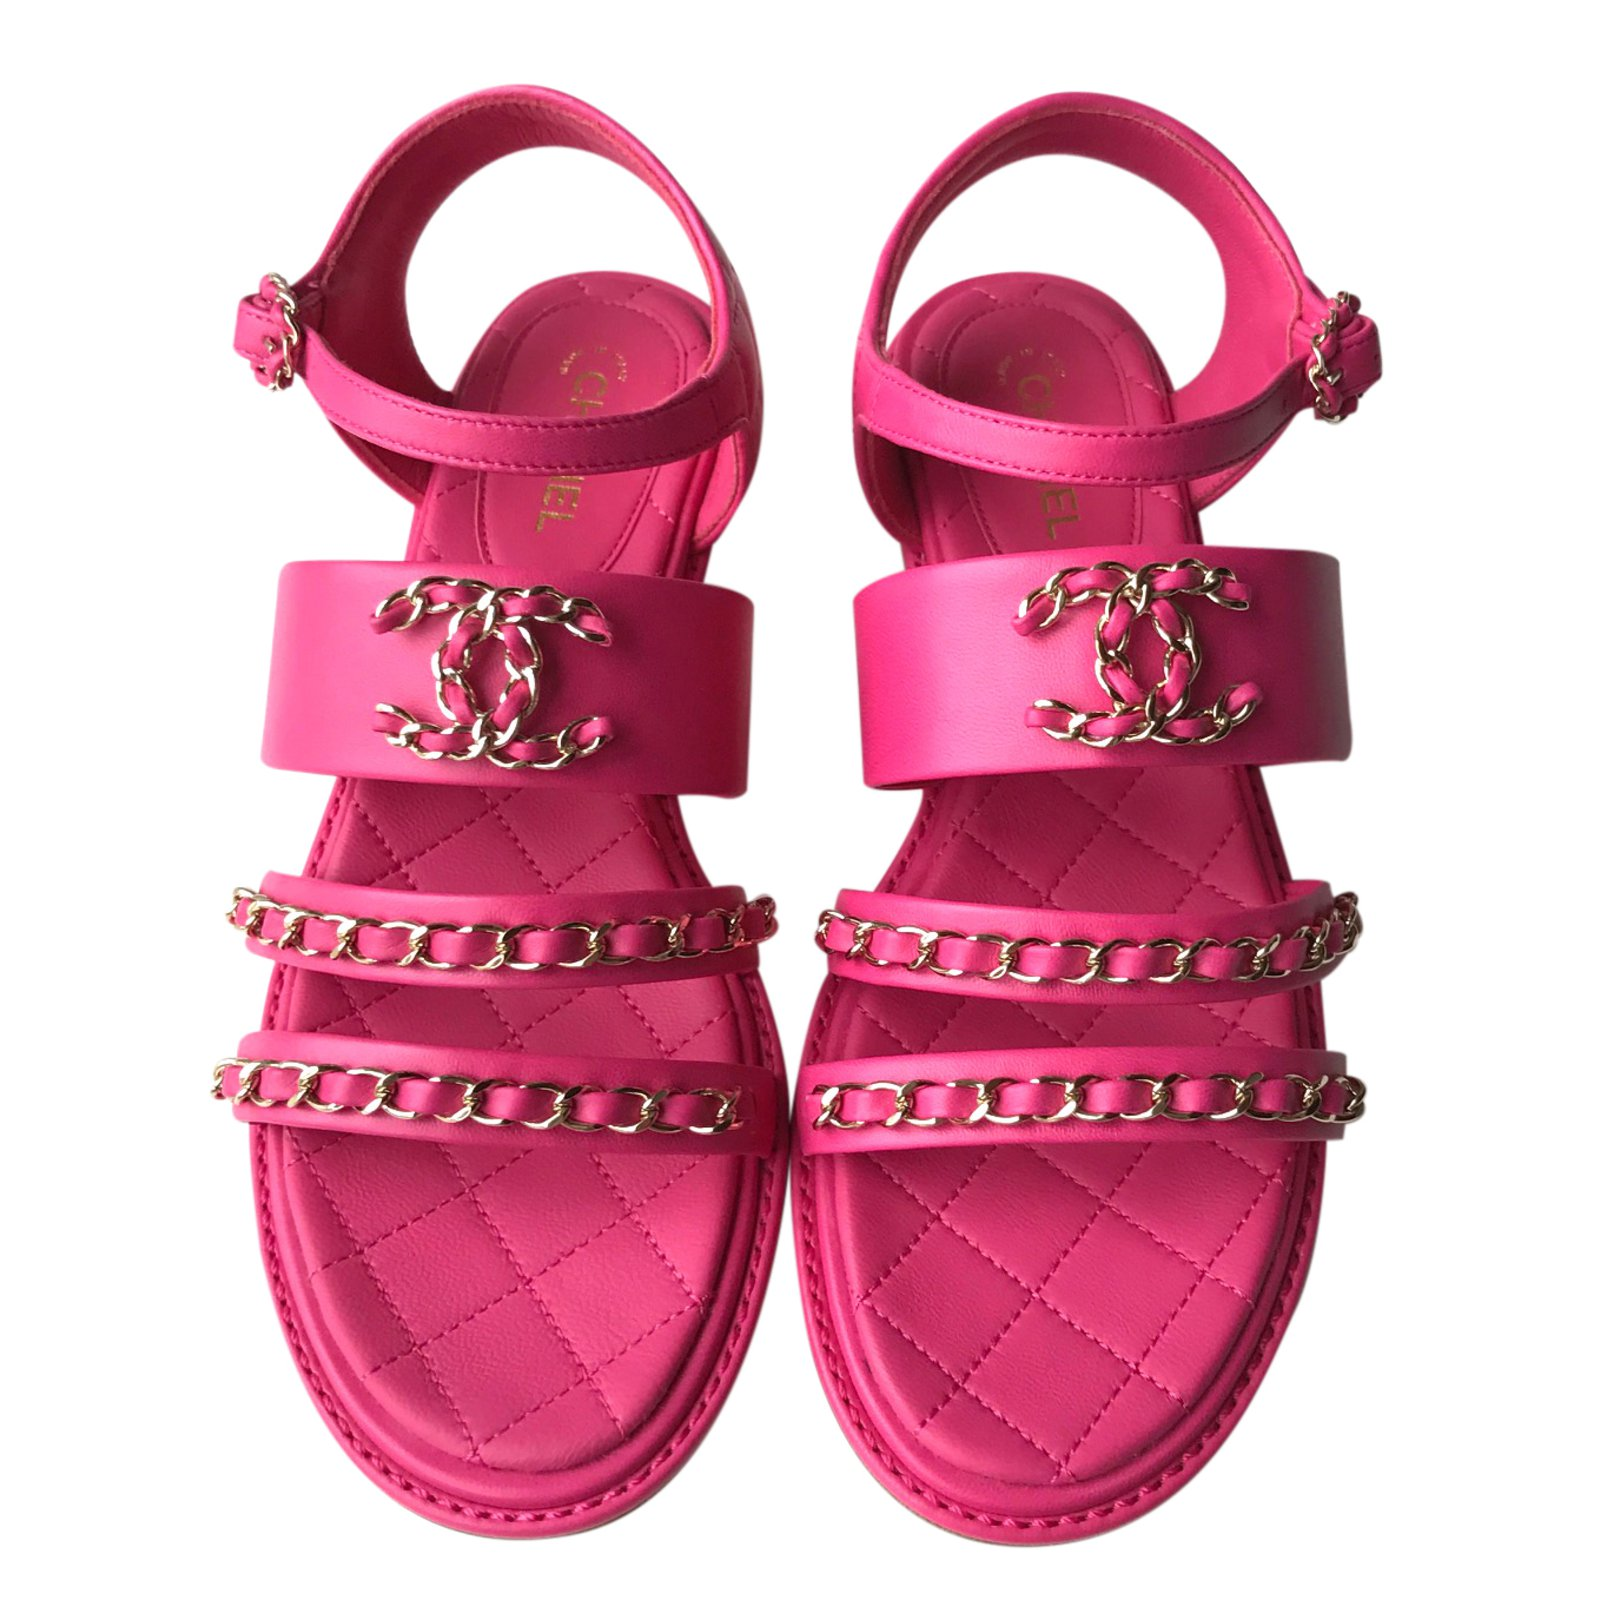 Joli sandals shoes